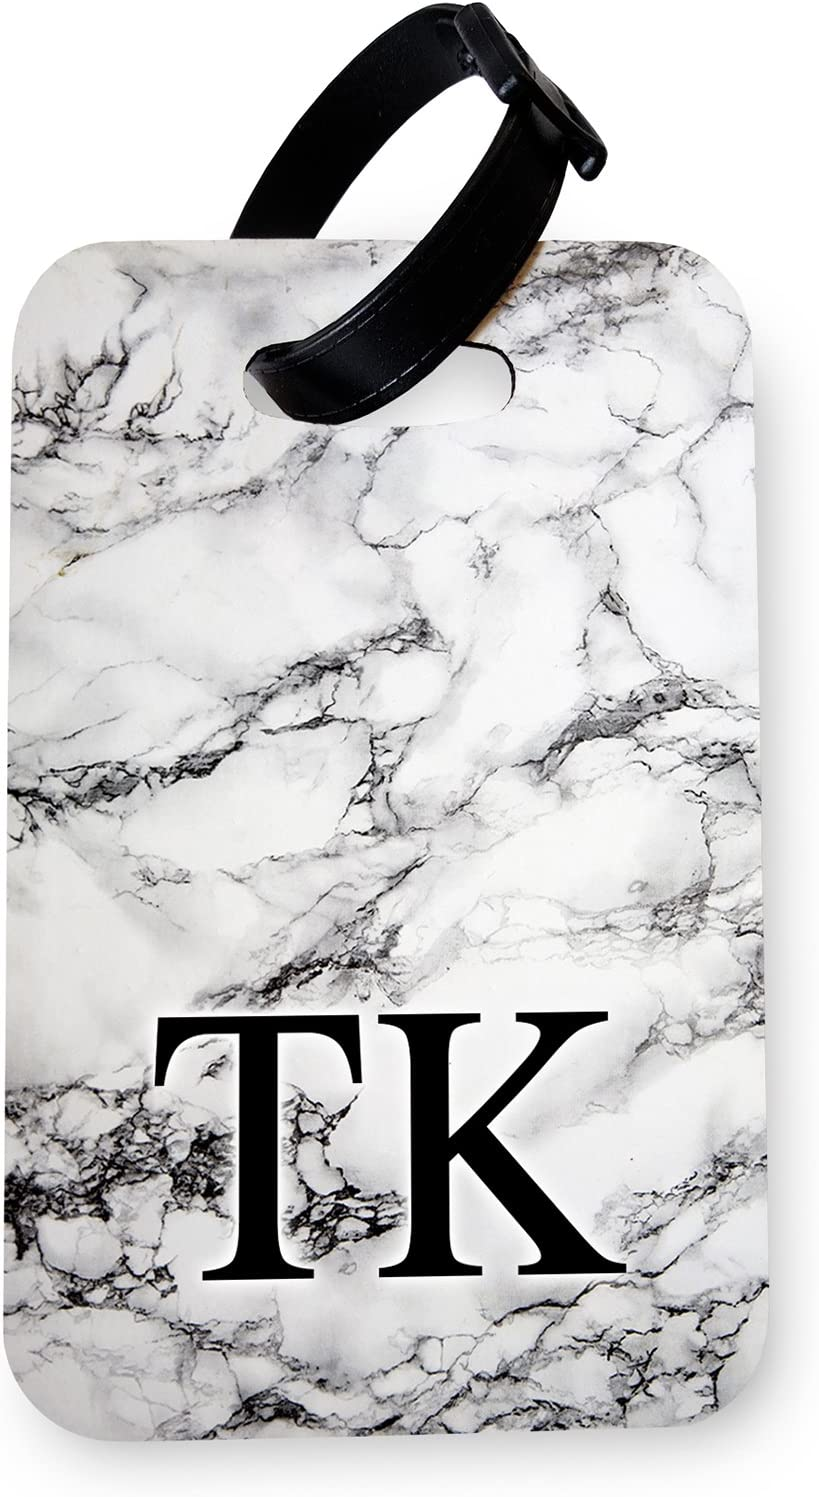 Holder//Luggage Tag Combo | Printed Art Faux Leather Passport Cover//Luggage Tag White Marble Monogram WTF Personalised